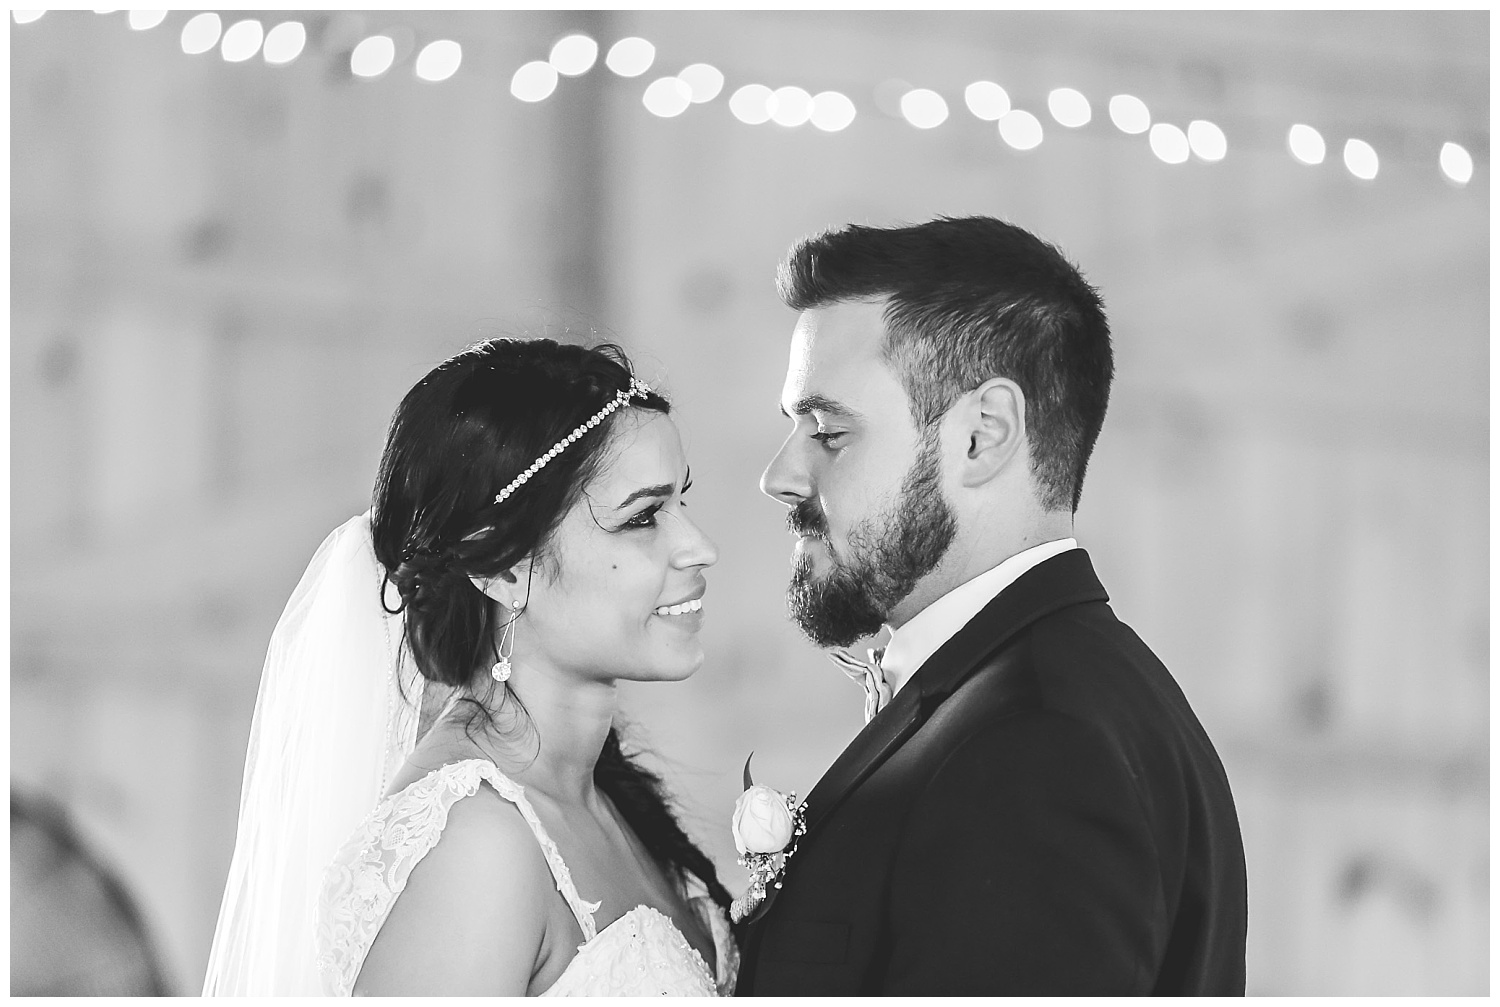 bride and groom first dance (black and white)